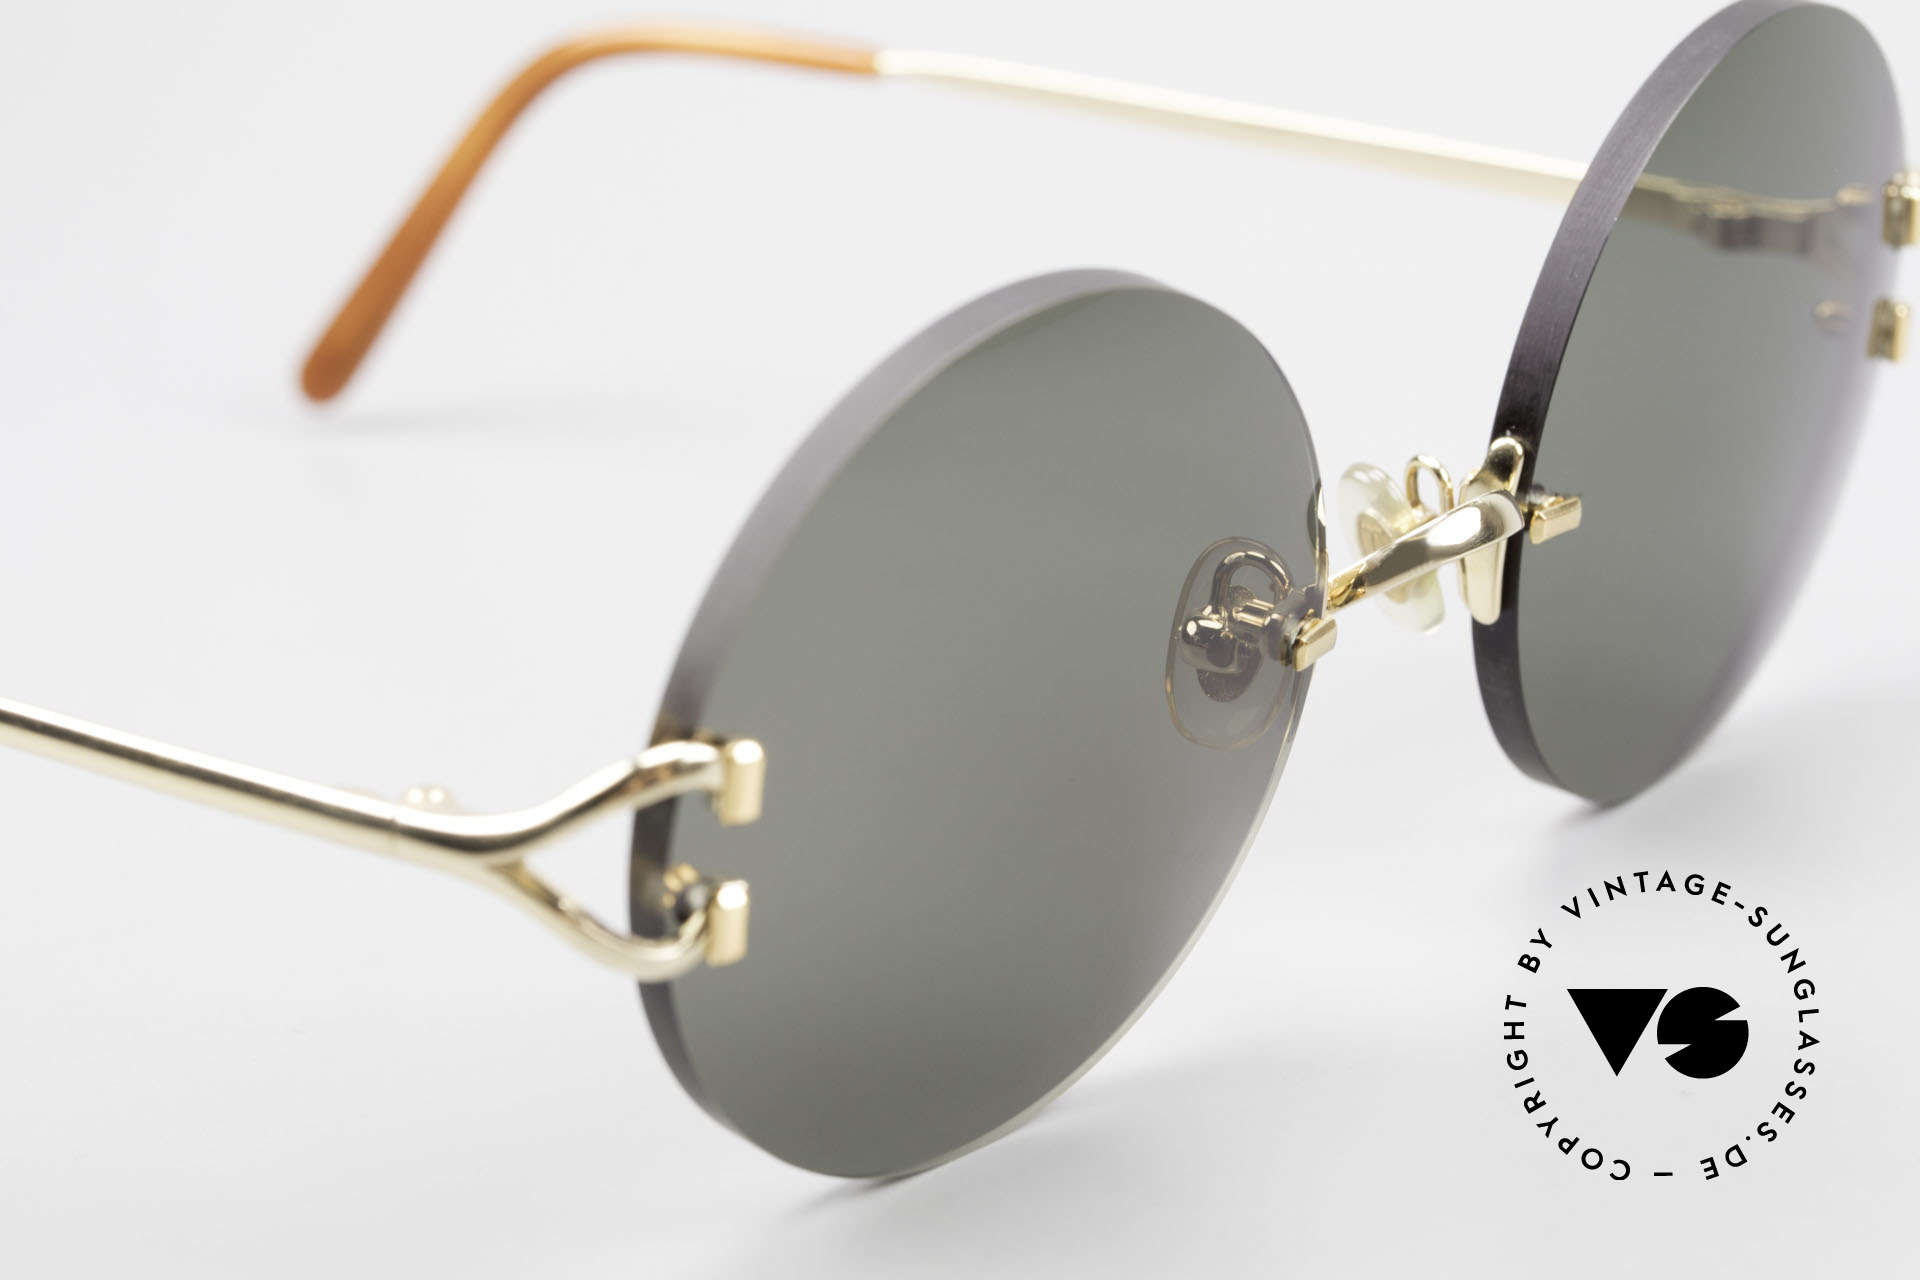 Cartier Madison Round Luxury Sunglasses 90's, 135mm temples & 130mm width = rather medium size, Made for Men and Women